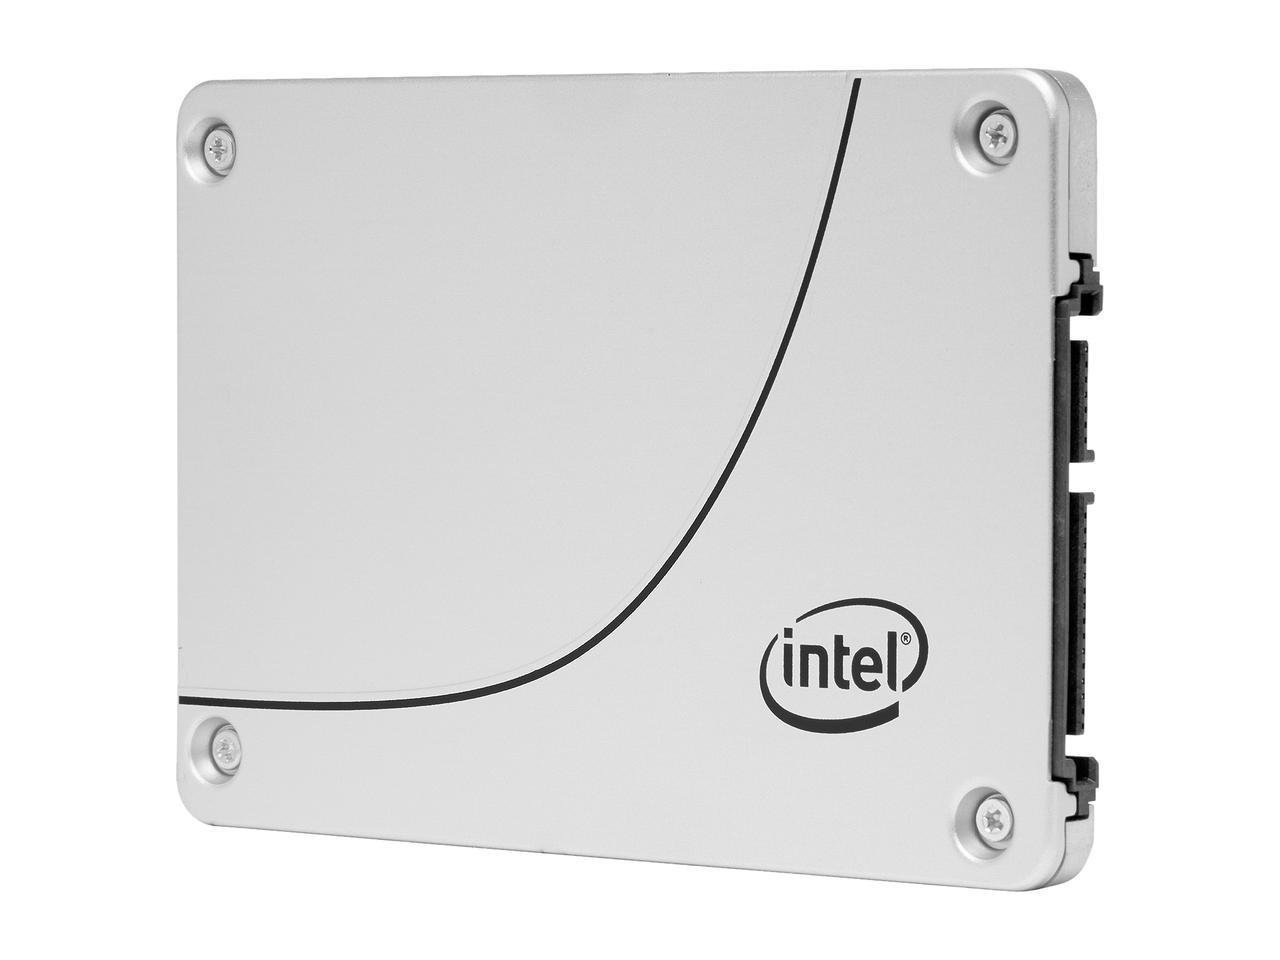 Intel SSDSC2BB800G7O1 S3320 Series 800 GB SATA 6Gb/s 2.5'' Solid State Drive (Newer Model) by Intel